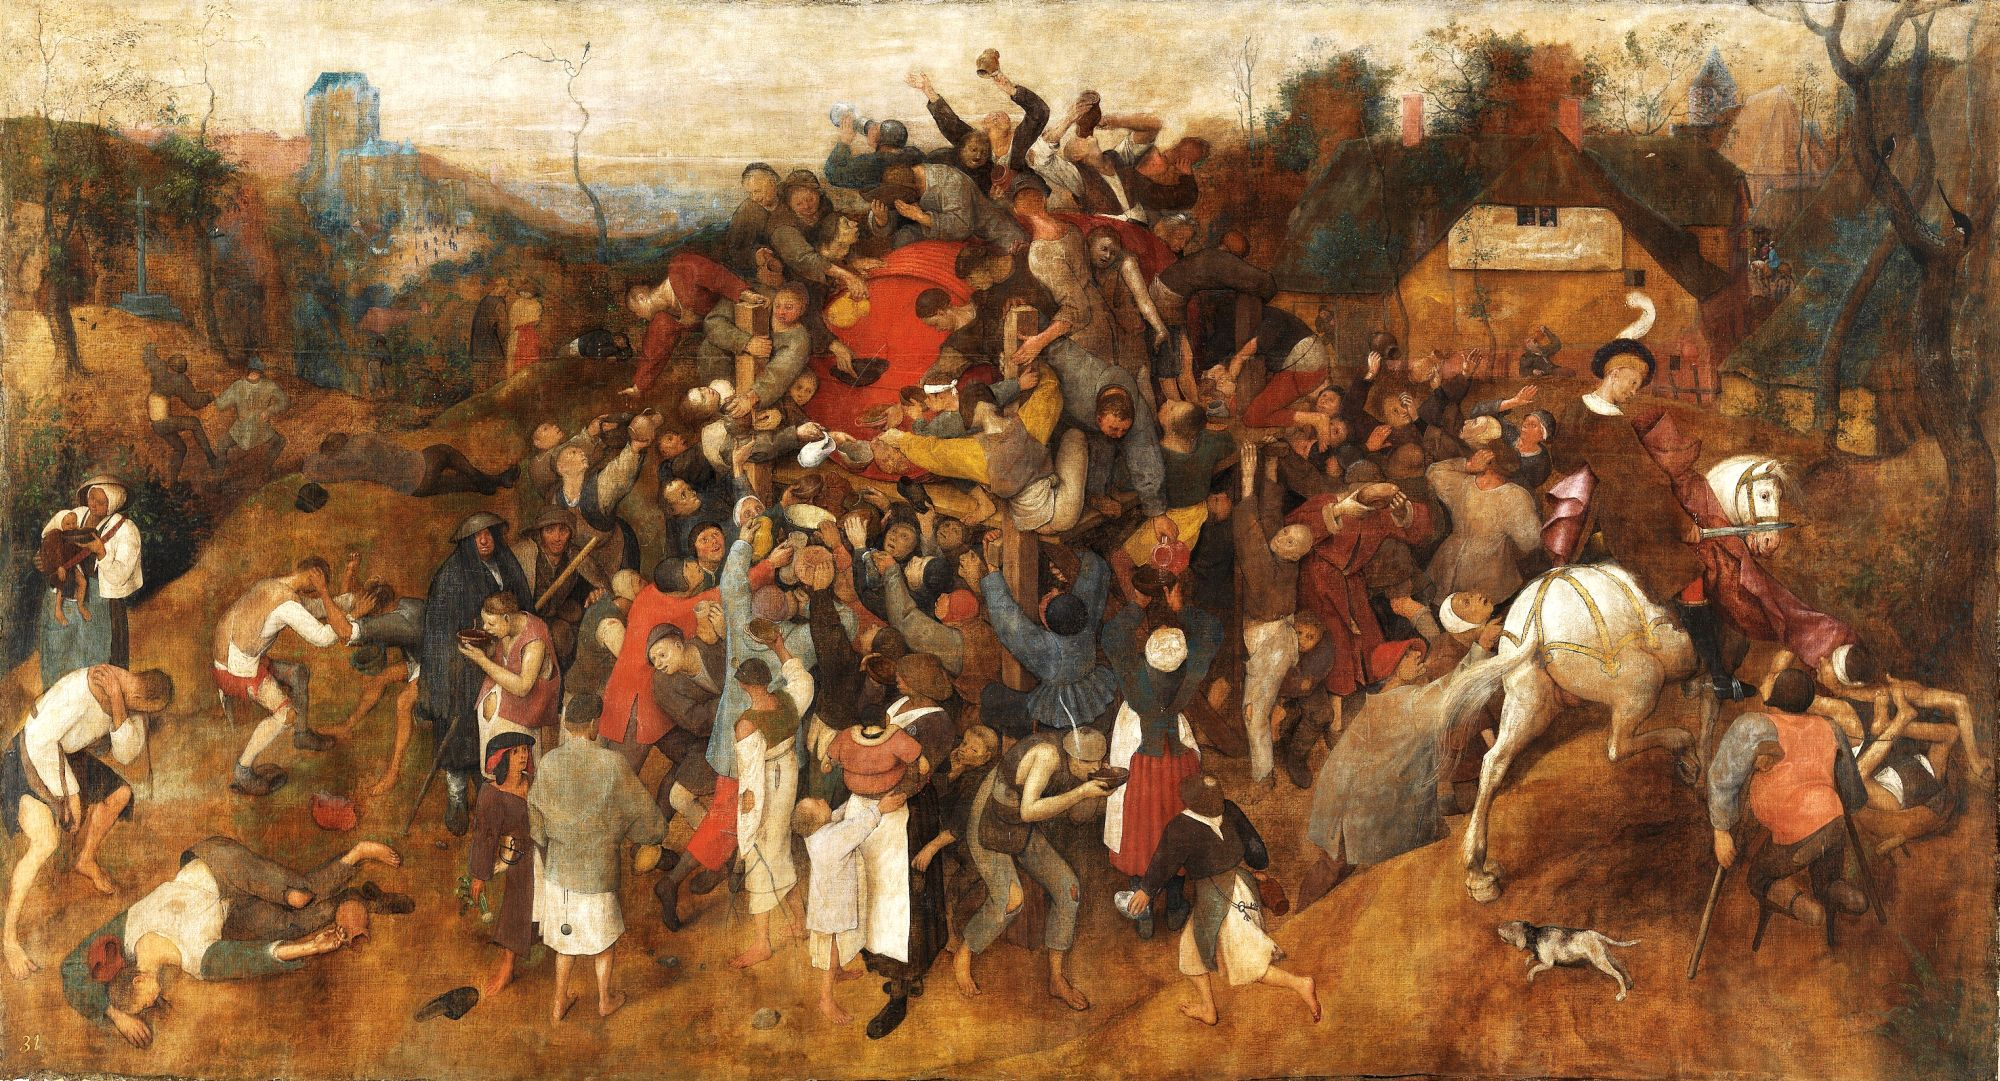 The life in times of bruegel